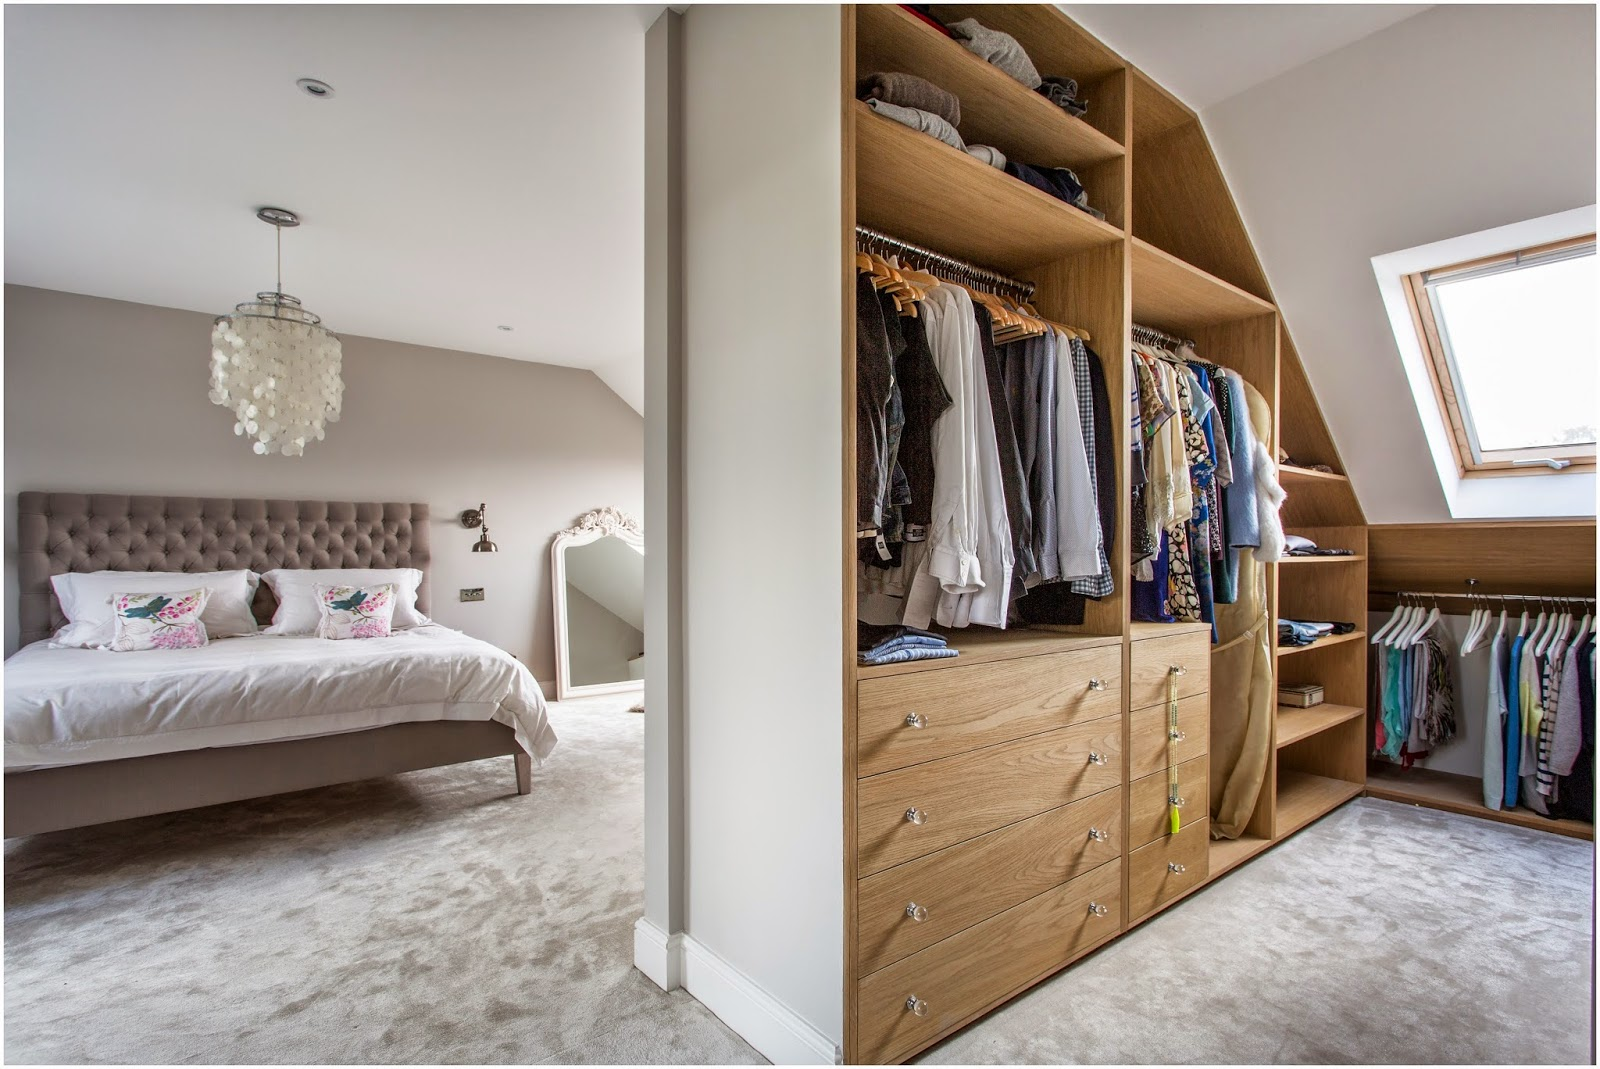 Loft Master Bedroom In South West London - Laura Butler-Madden